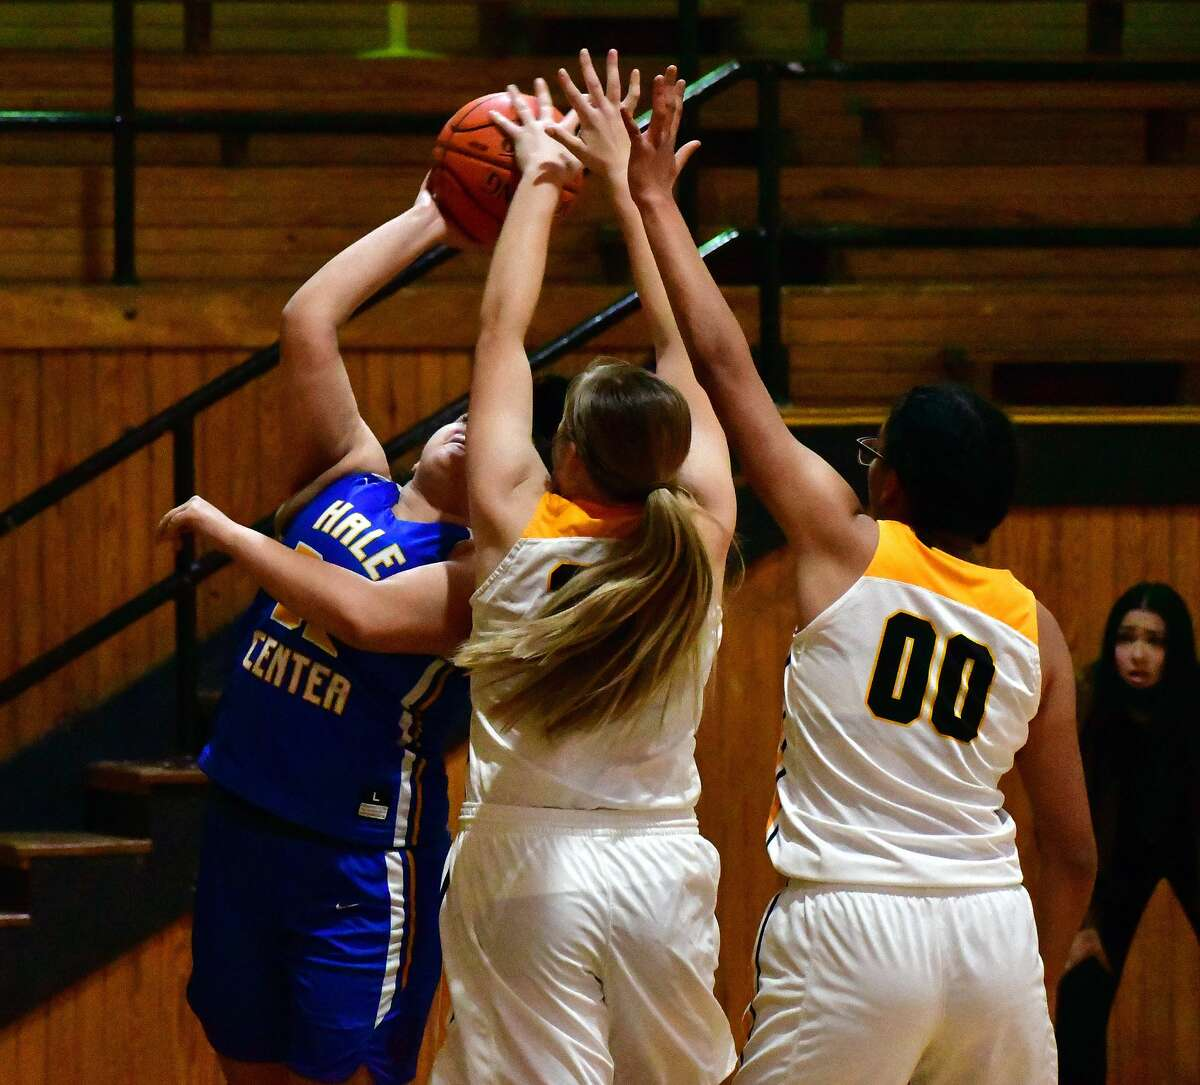 Hale Center pulled away for a 49-34 victory over Kress in a non-district girls basketball game on Saturday, Nov. 7, 2020 in Kress in the season opener for both teams.